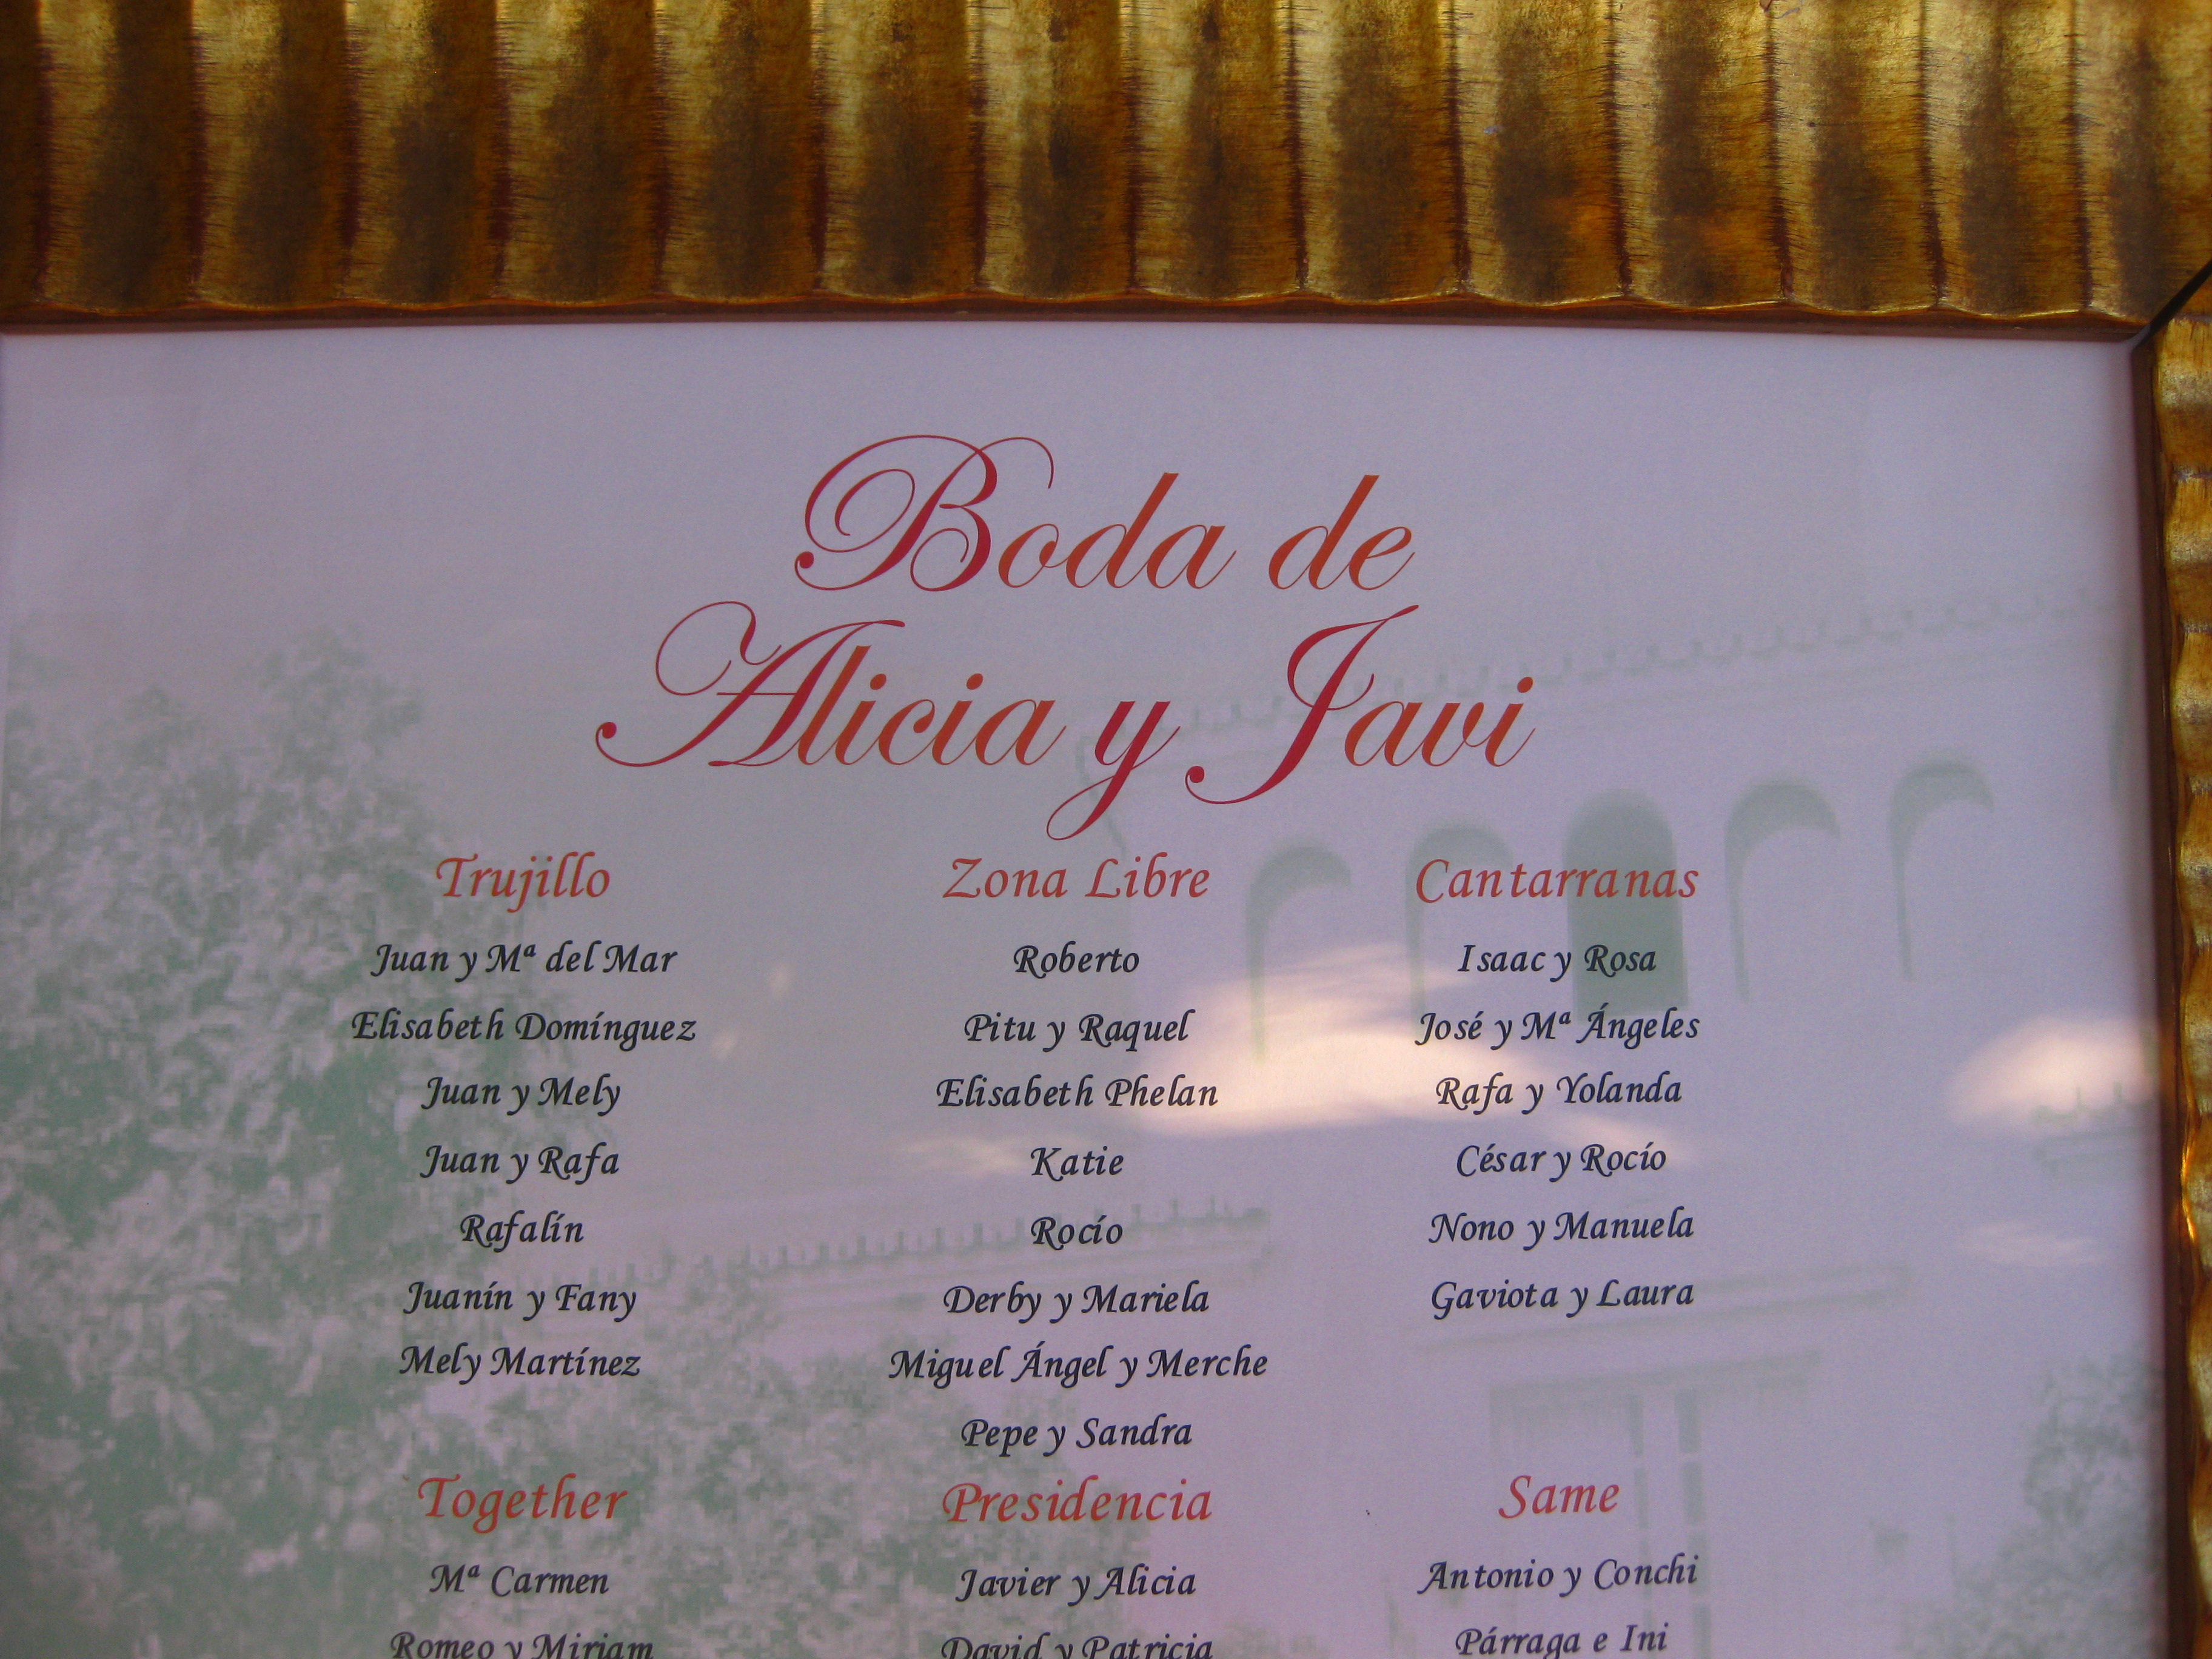 I was seated at the Zona Libre table. Zona Libre was the name of the bar where I first befriended the groom.